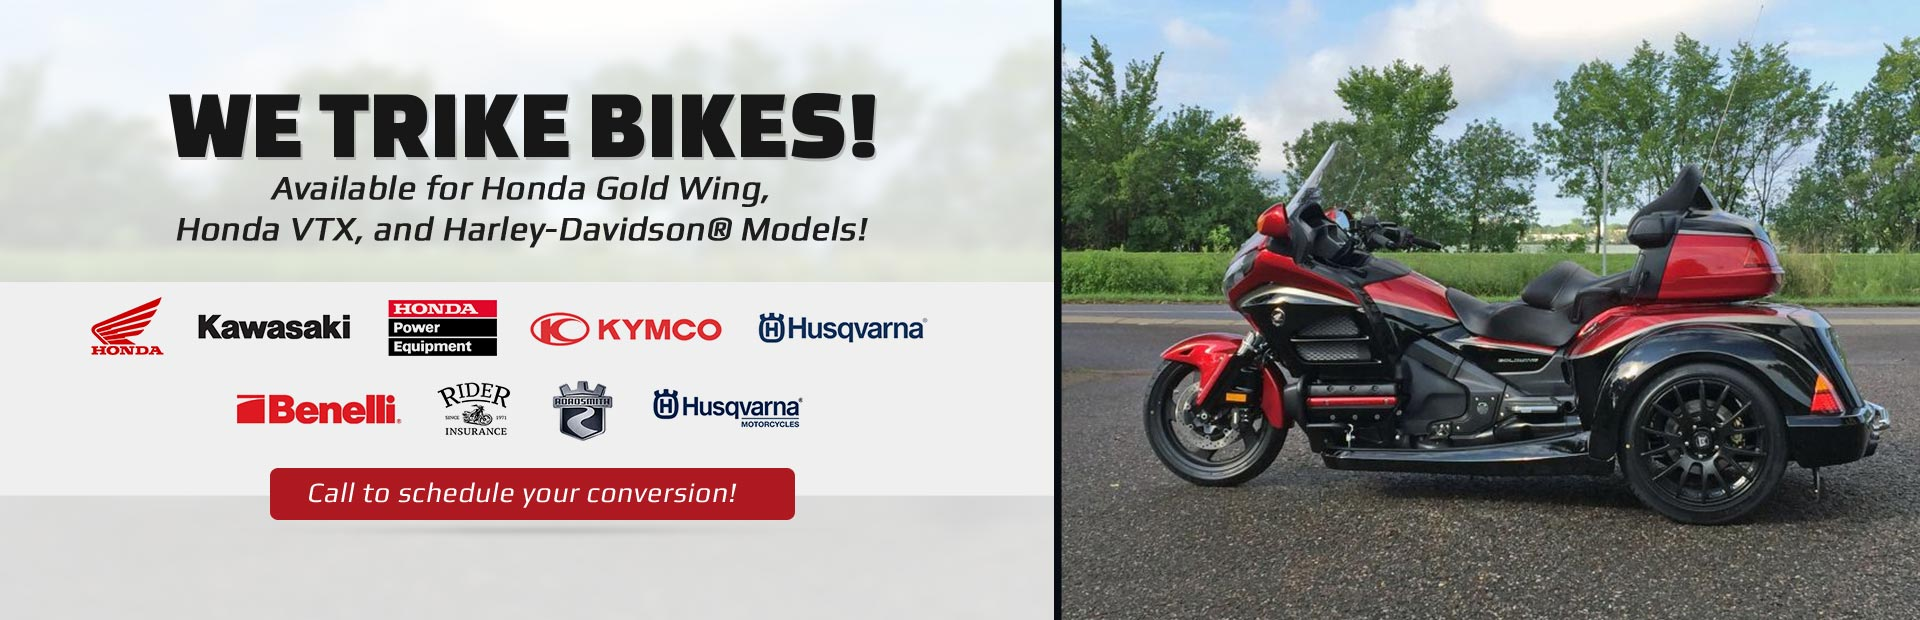 We trike bikes! Call (866) 544-3000 to schedule your conversion!